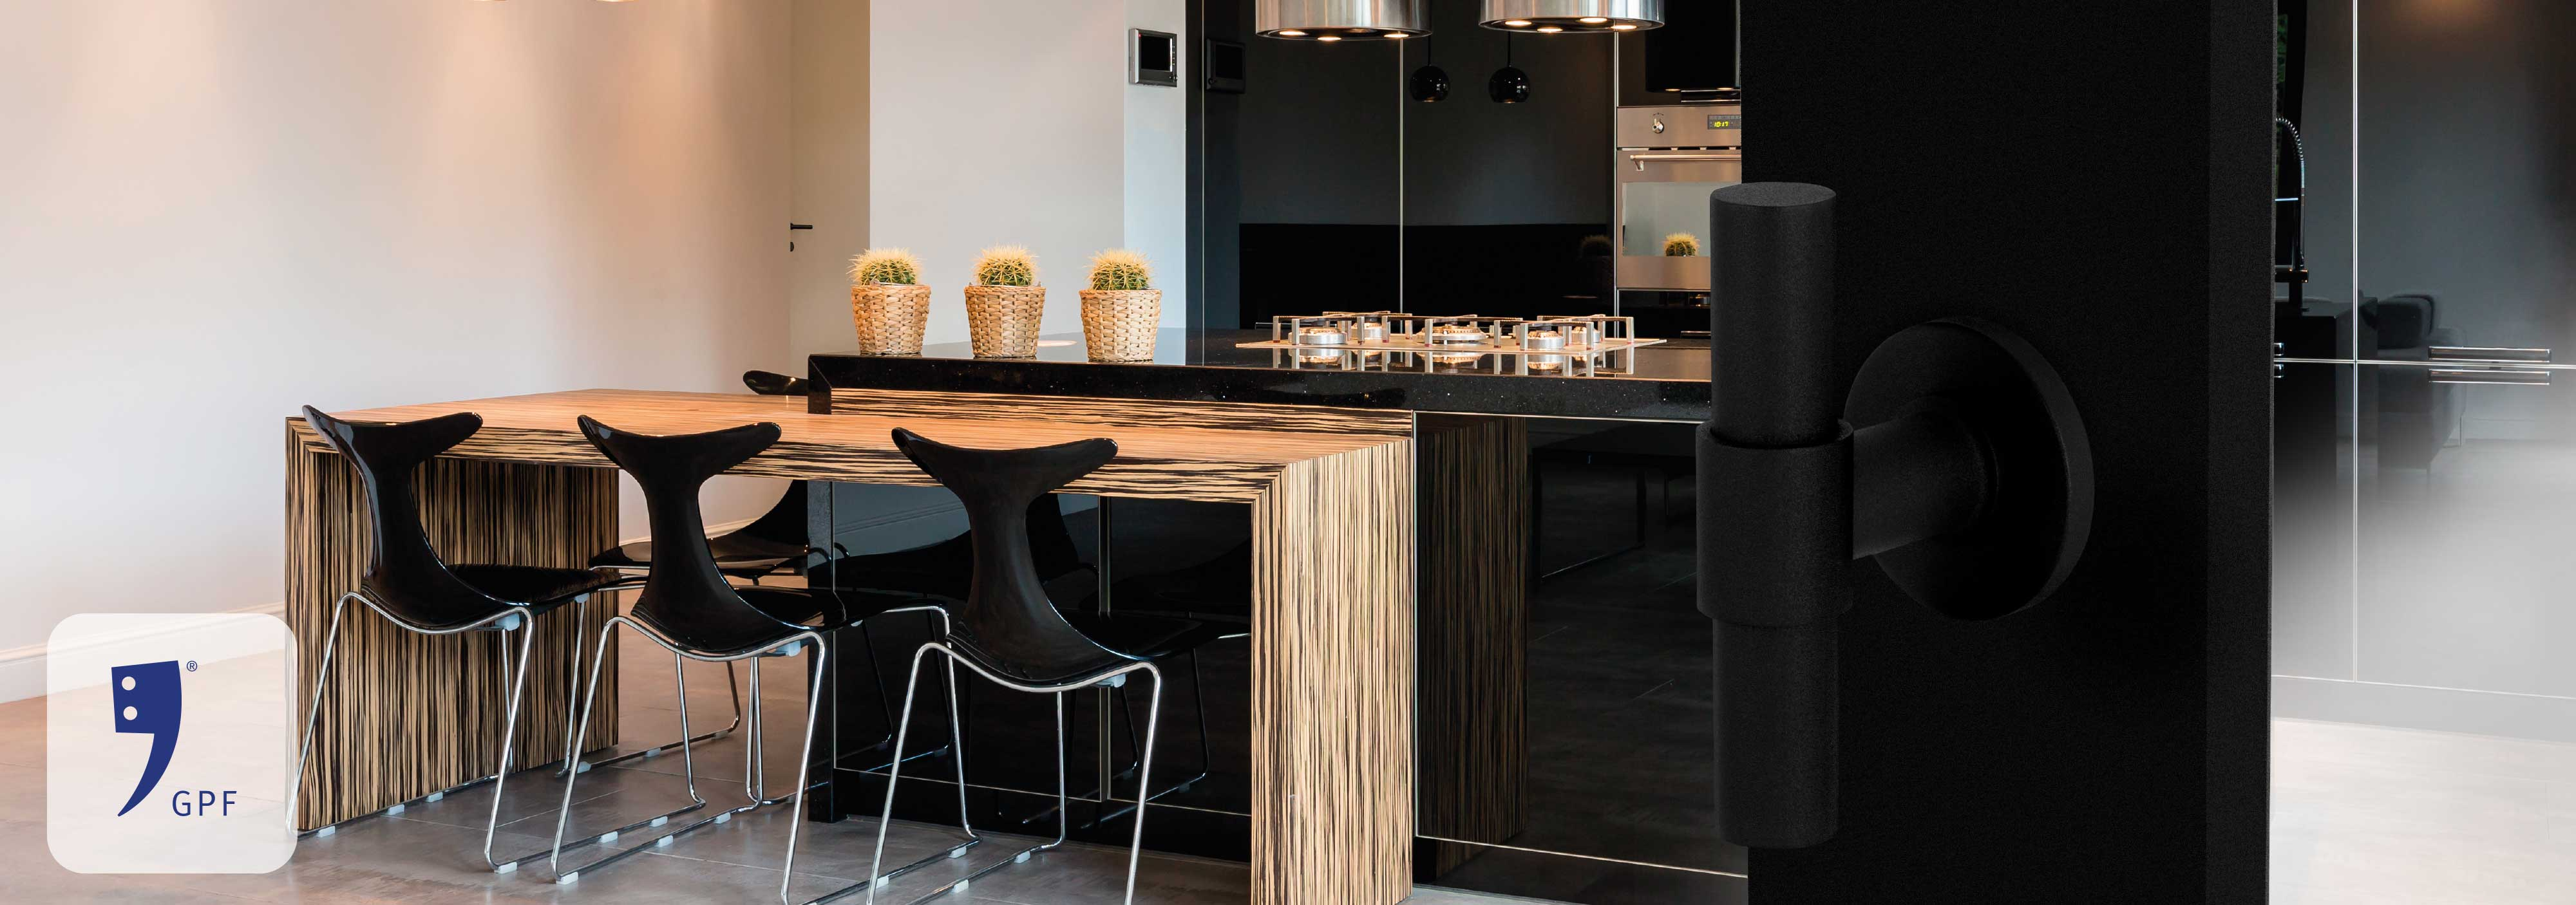 Stylish kitchen interior in black